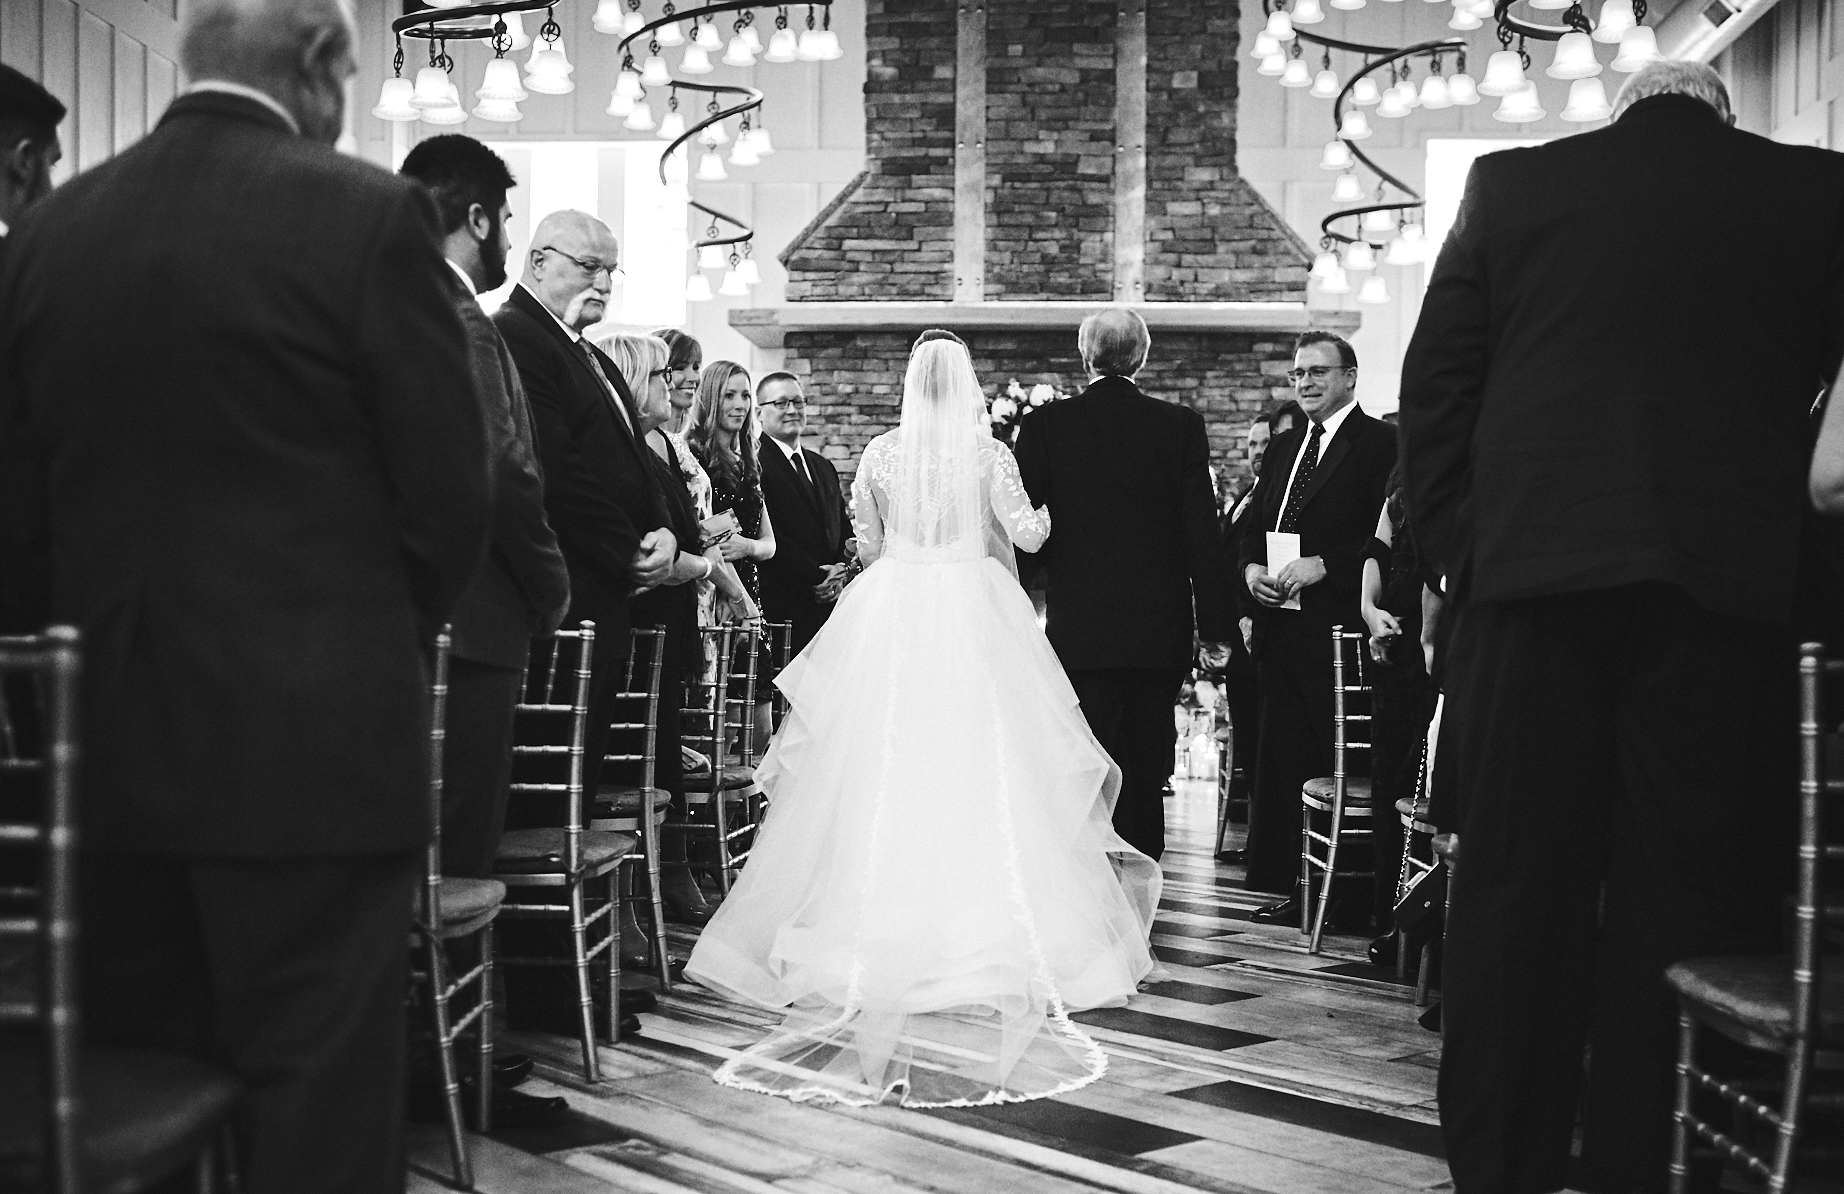 181027_TheRylandInnFallWeddingPhotography_NJWeddingPhotographer_By_BriJohnsonWeddings_0097.jpg